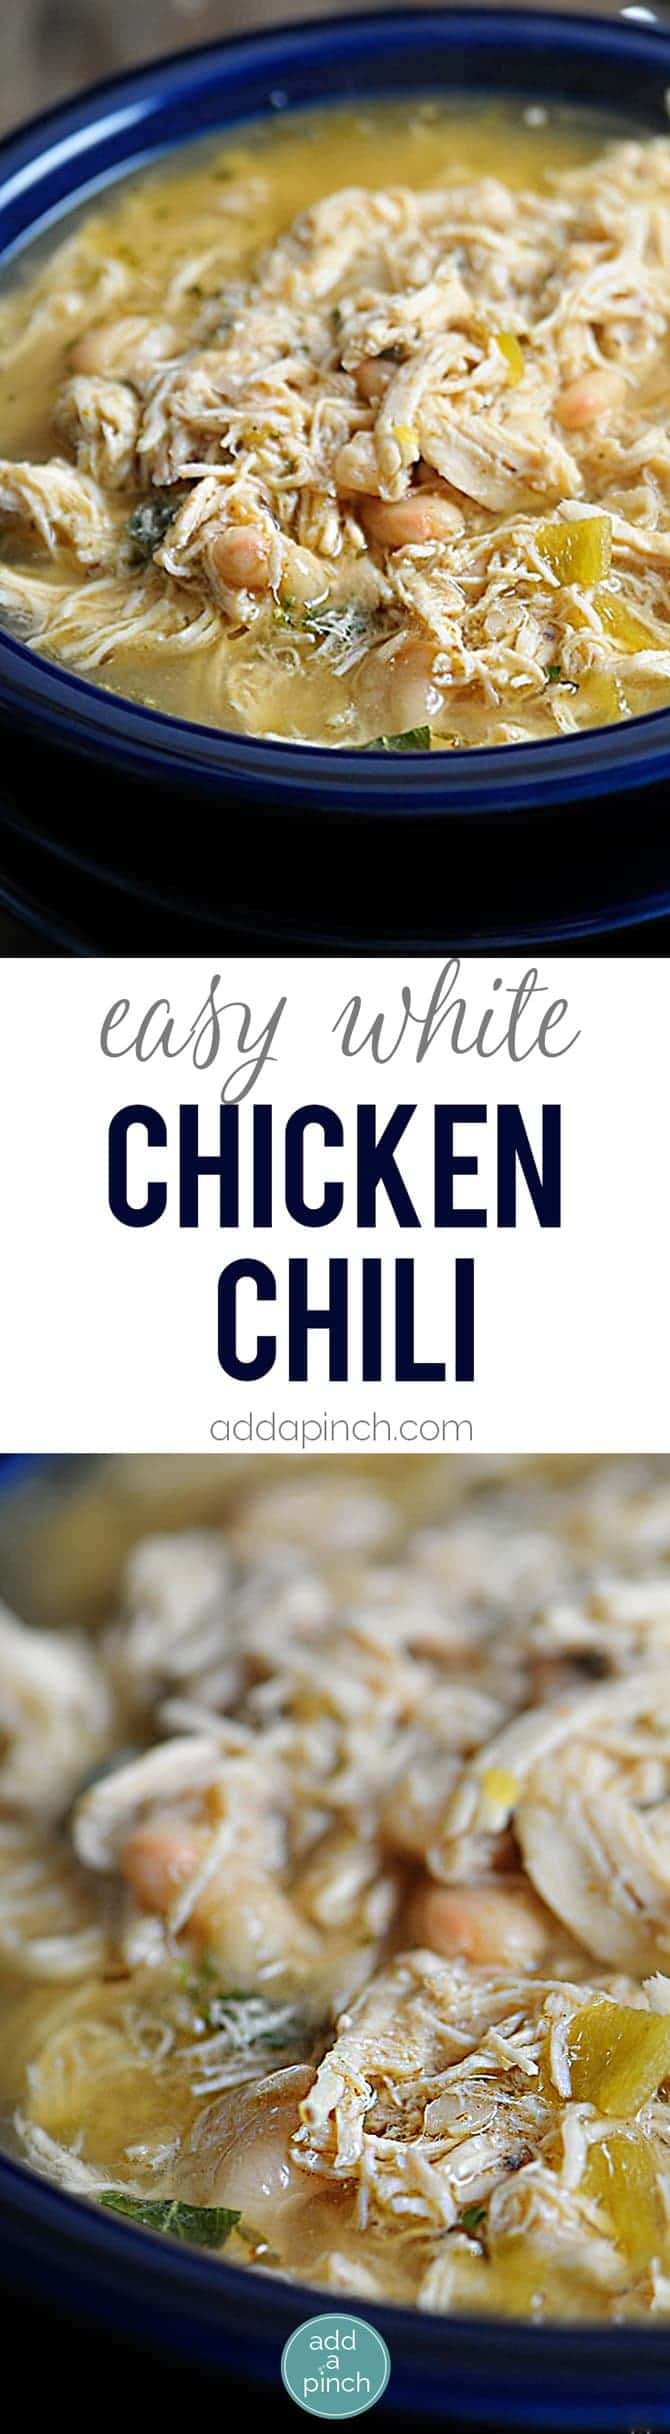 Easy White Chicken Chili Recipe - White Chicken Chili makes a delicious meal full of spicy chili flavor, chicken and white beans. You'll love this easy White Chicken Chili recipe. Stovetop, Slow Cooker and Freezer Instructions are provided to make easily make this White Chicken Chili a favorite anytime! // addapinch.com